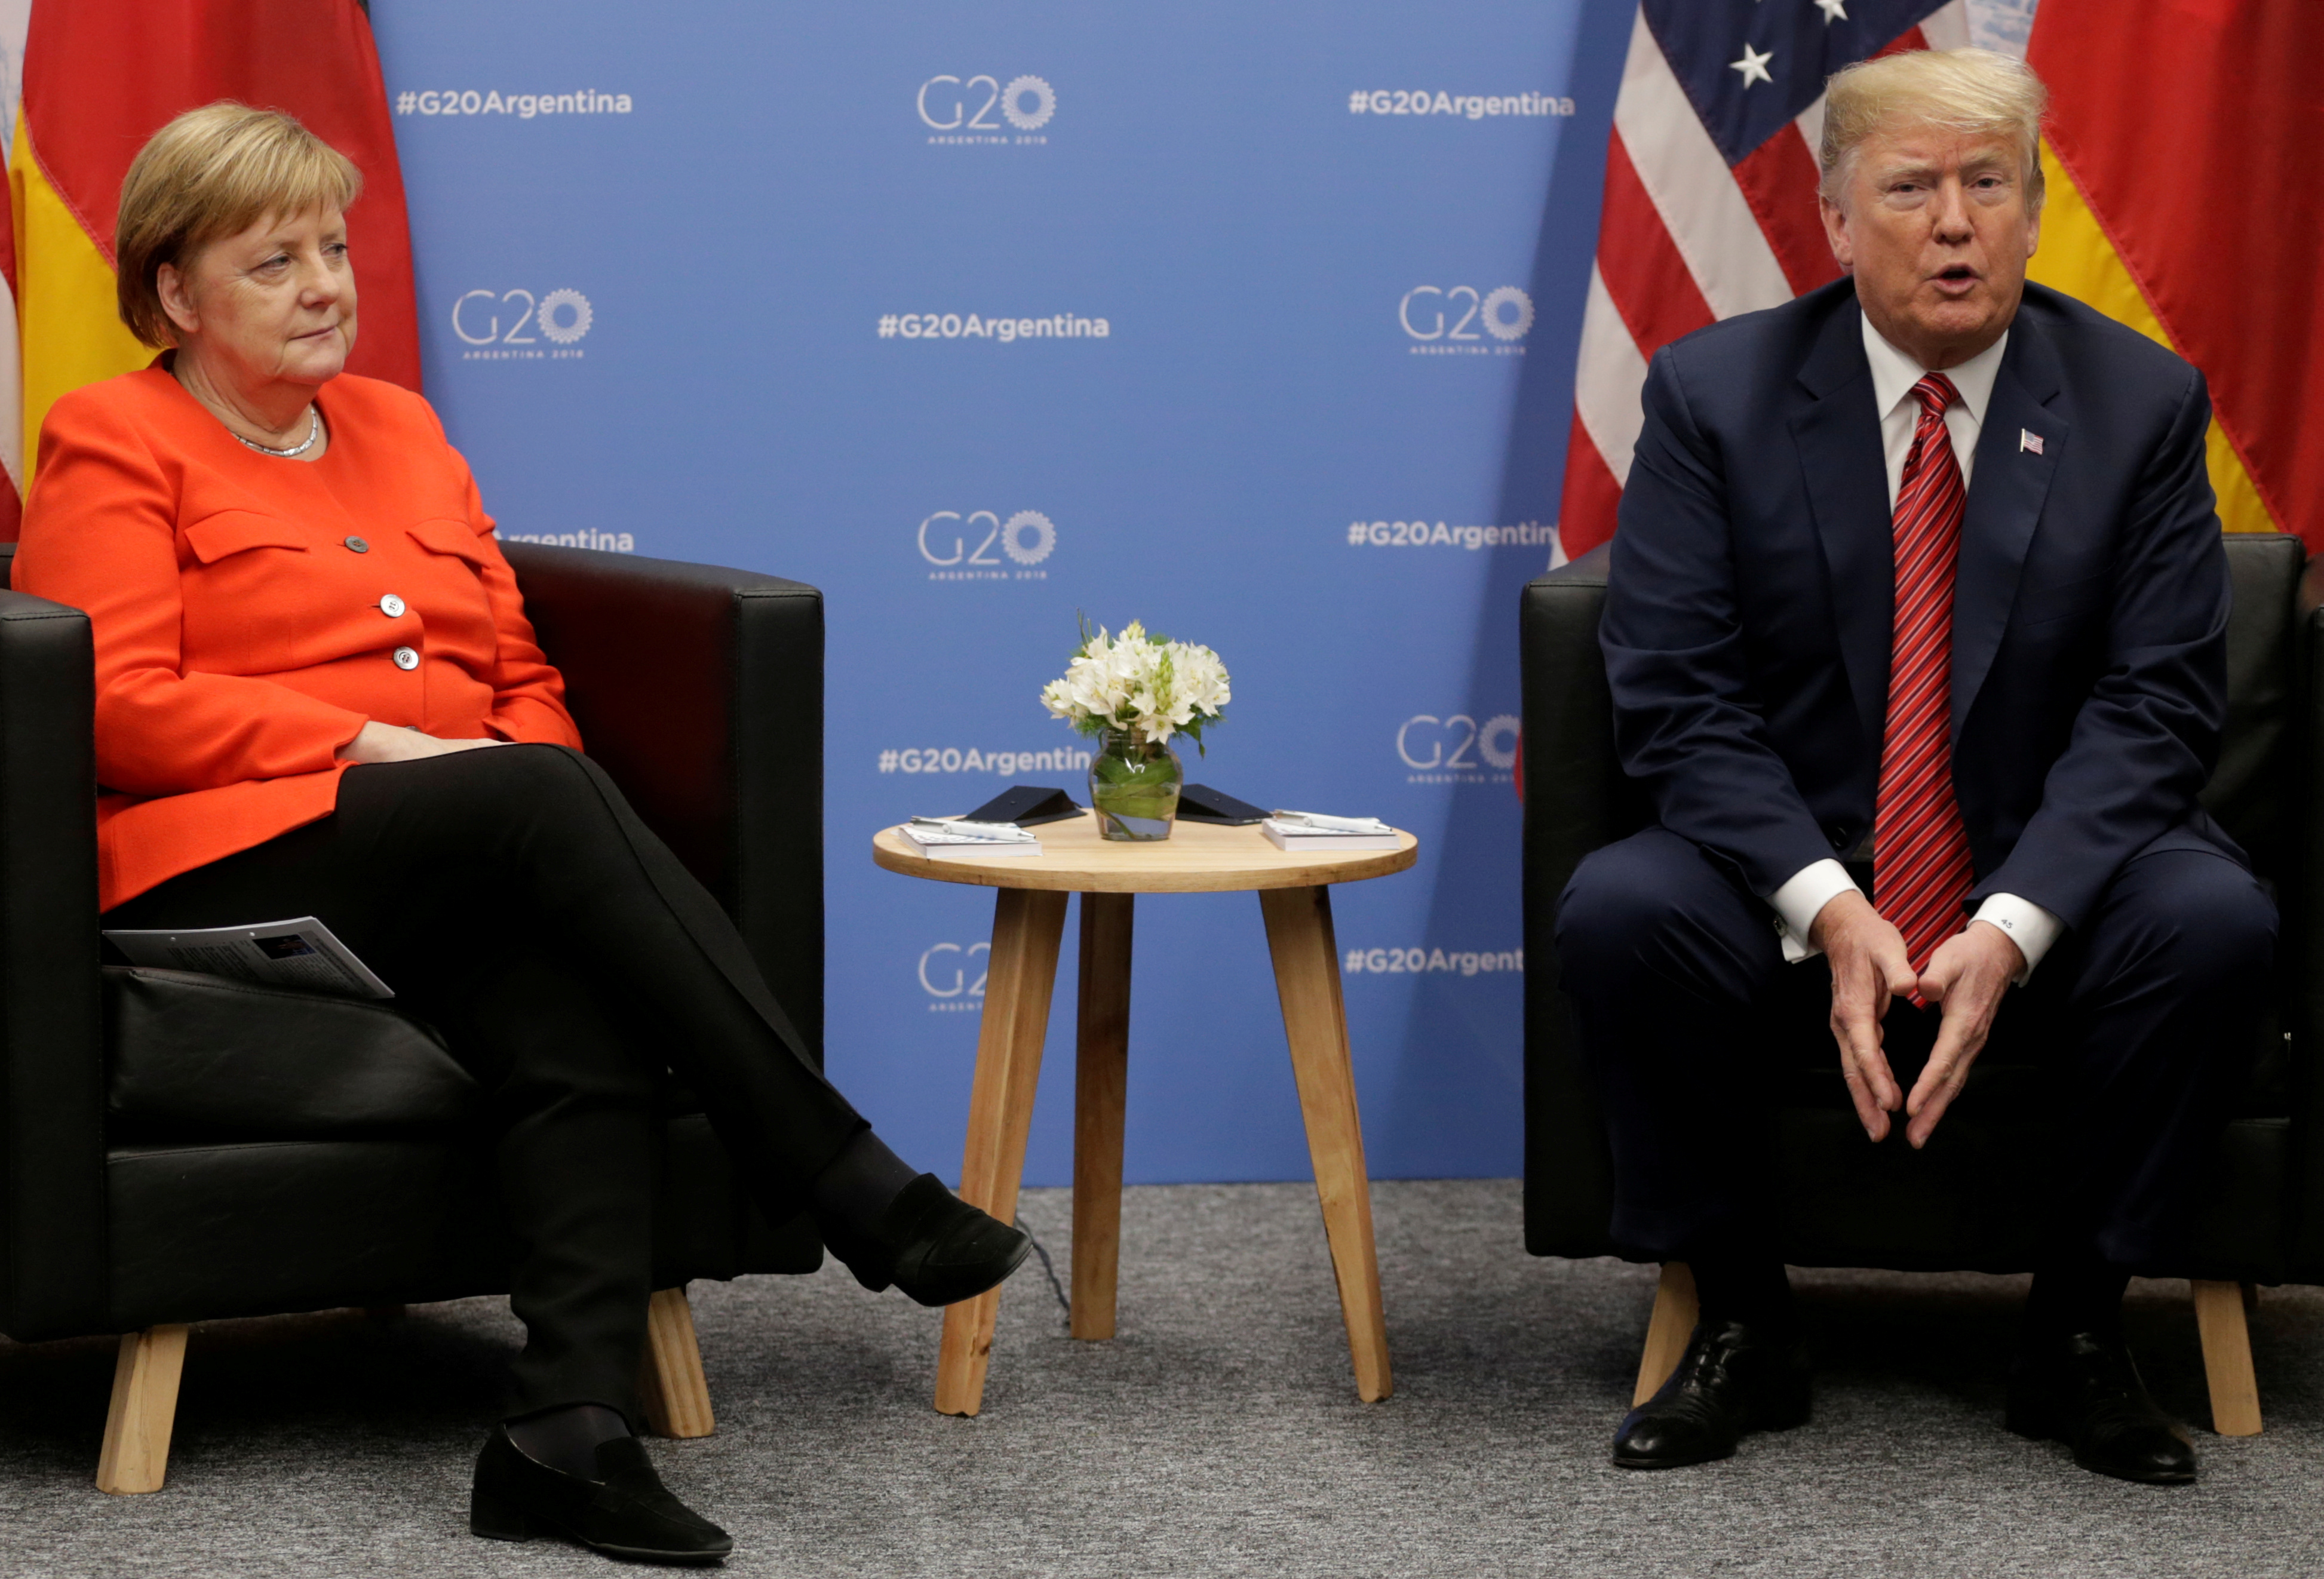 U.S. President Donald Trump and German Chancellor Angela Merkel attend a meeting during the G20 leaders summit in Buenos Aires, Argentina December 1, 2018. REUTERS/Luisa Gonzalez